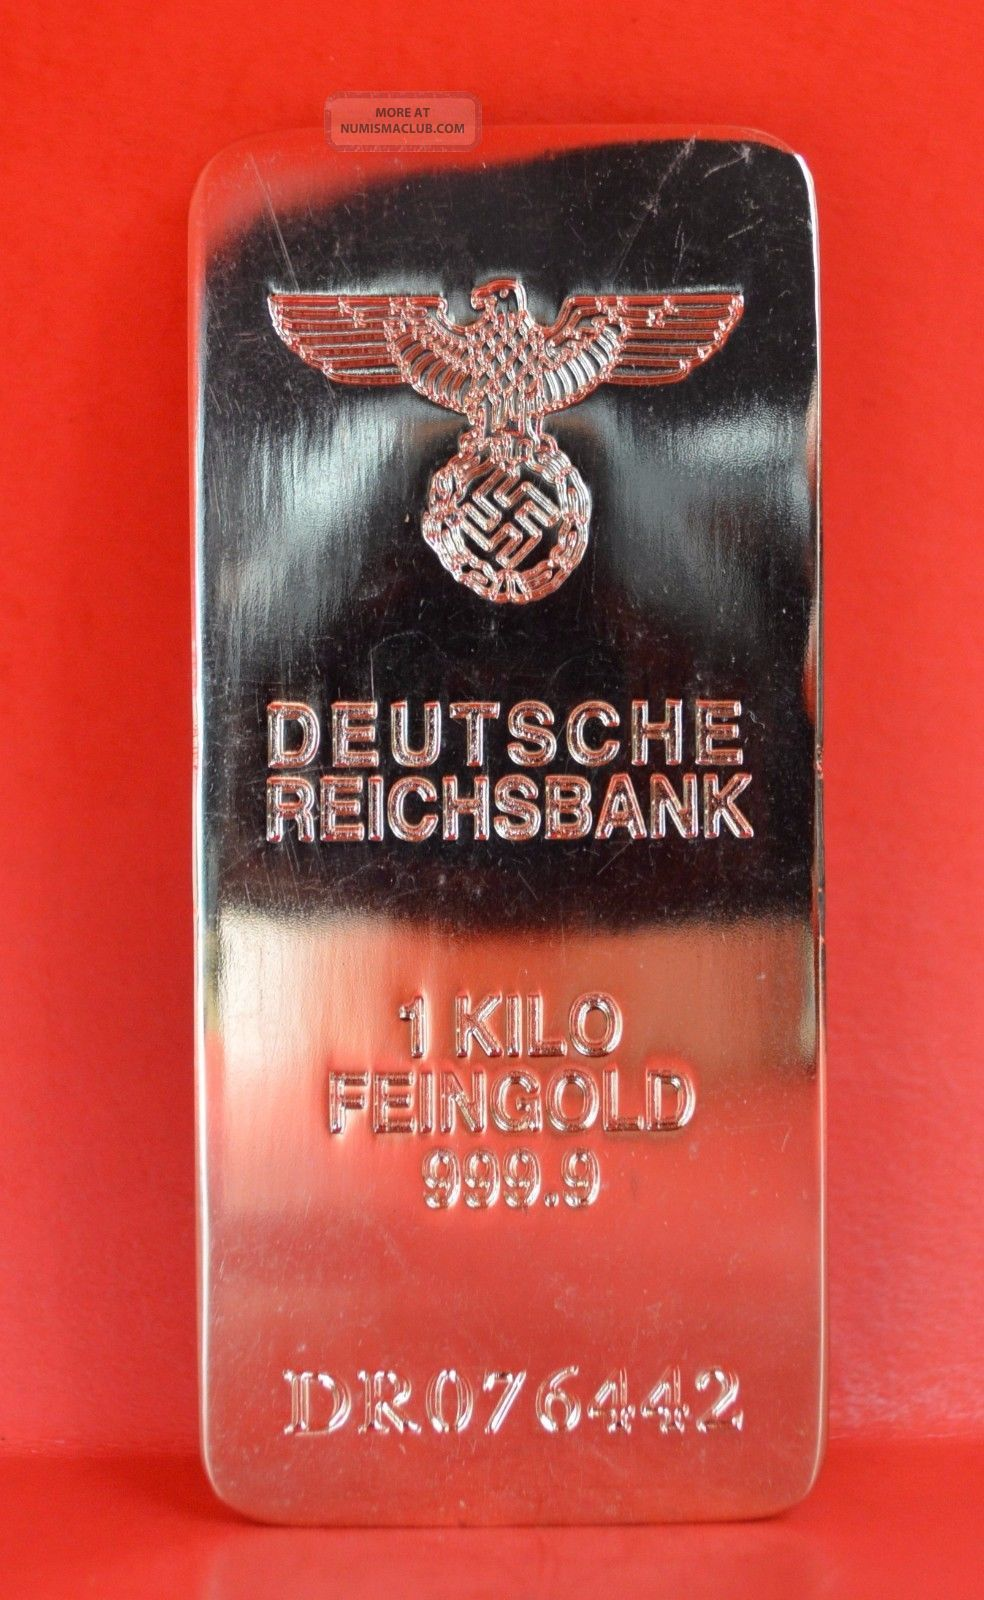 Deutsche Reichsbank Bank 1 Kilo Feingold Bullion 999.  9 Gold Bar 1997 Gold photo